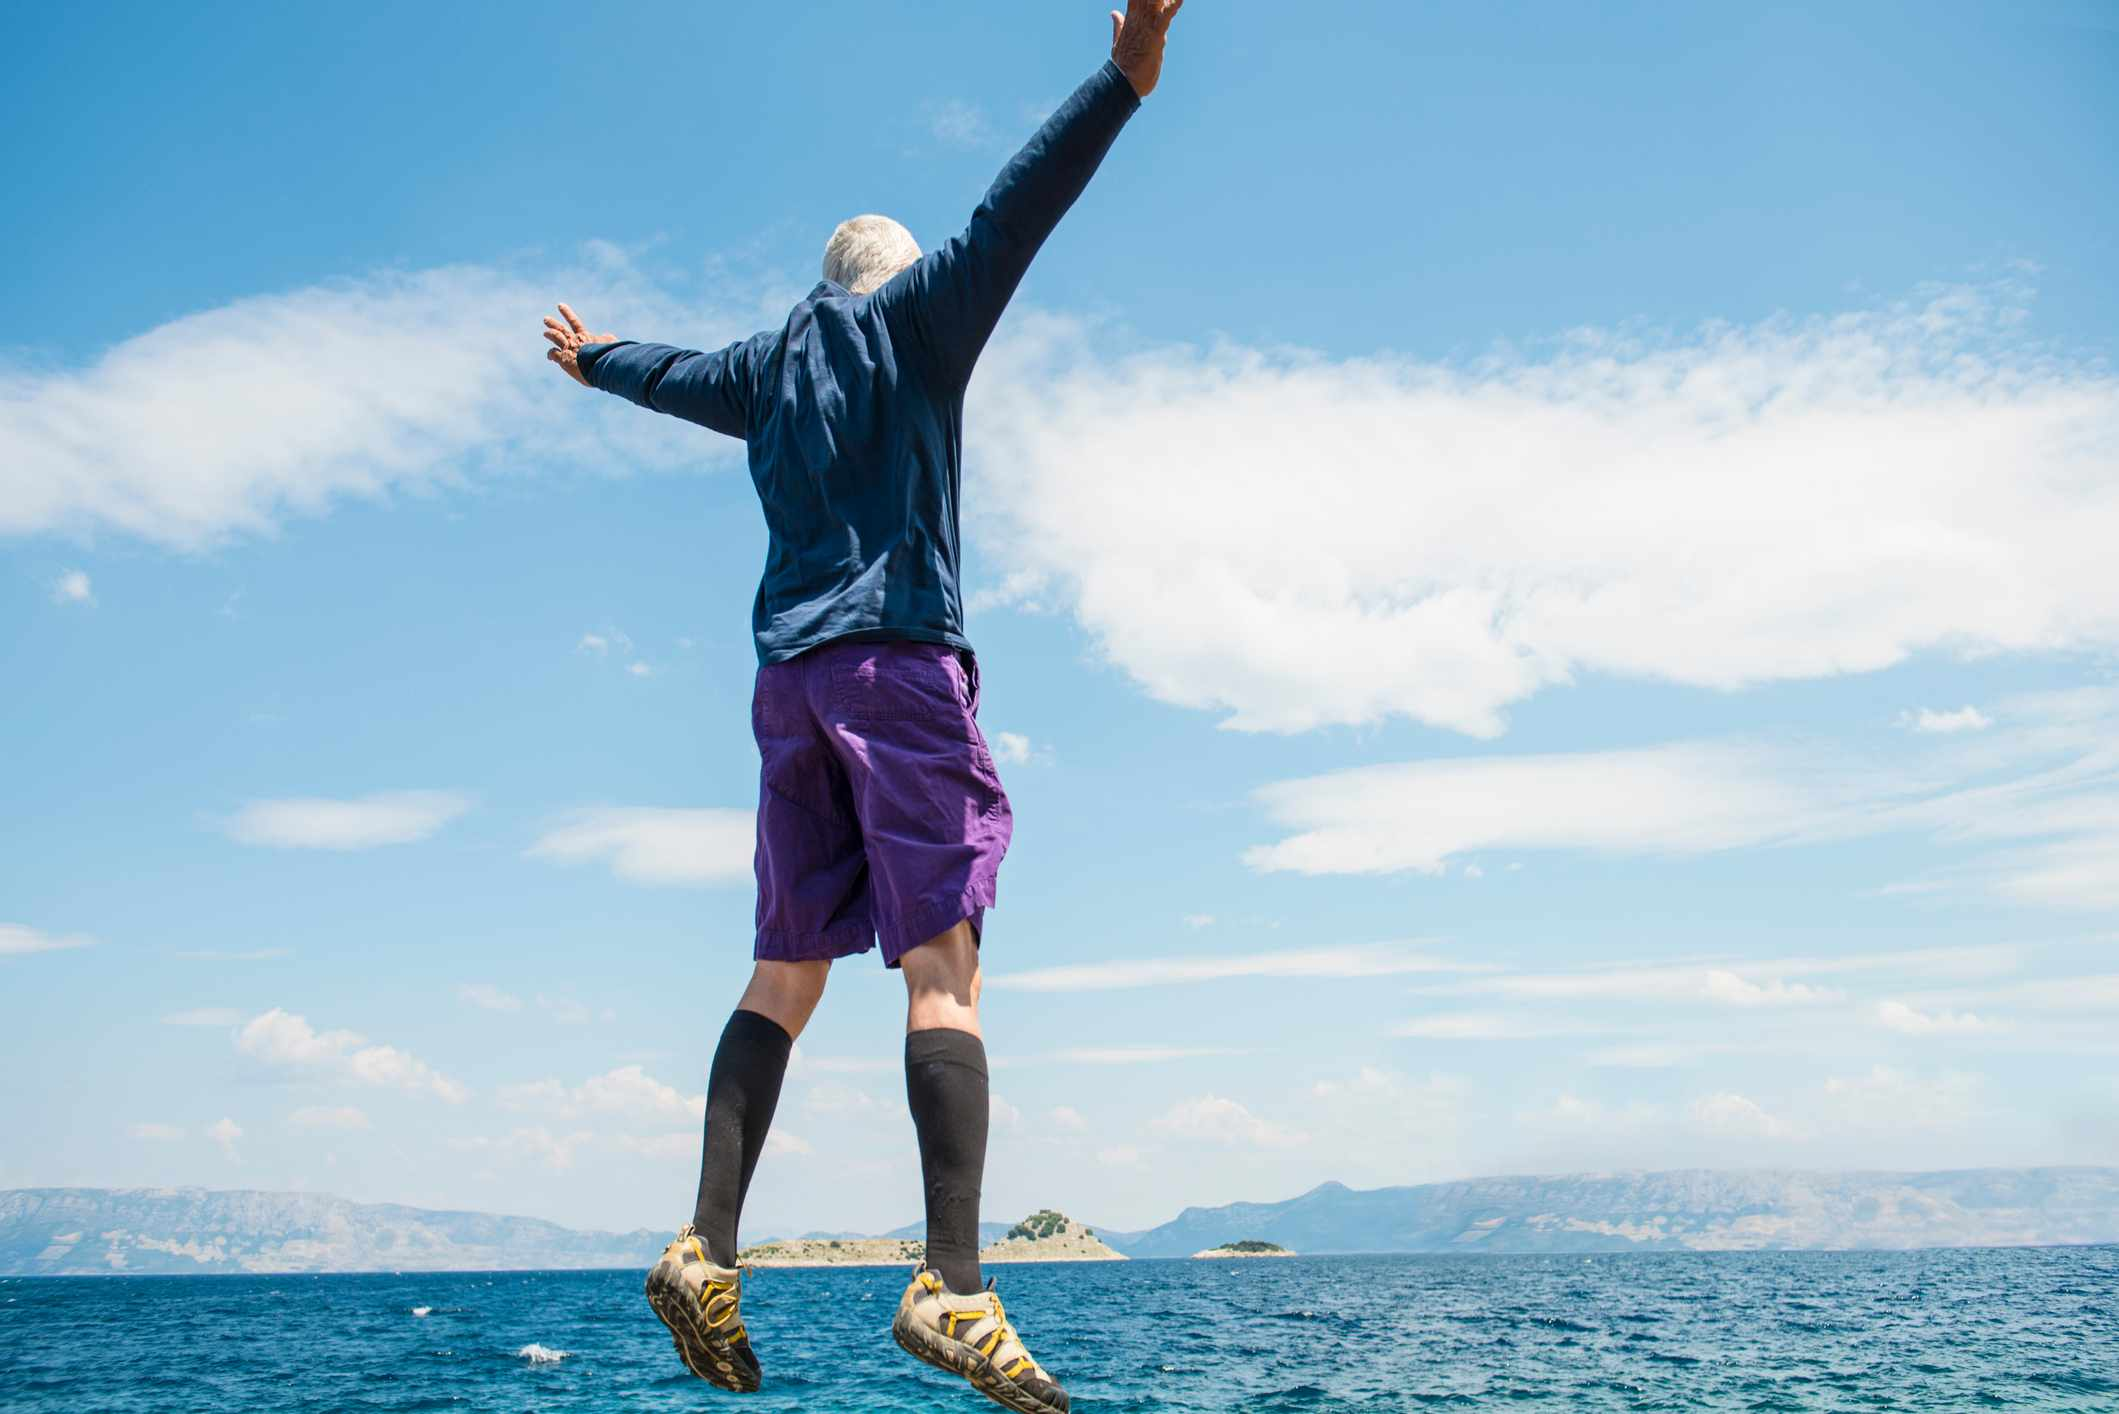 Low angle view of senior men jumping up with arms raised against blue sea and blue sky on sunny summer day. He wears shorts and t-shirt. Rear view.